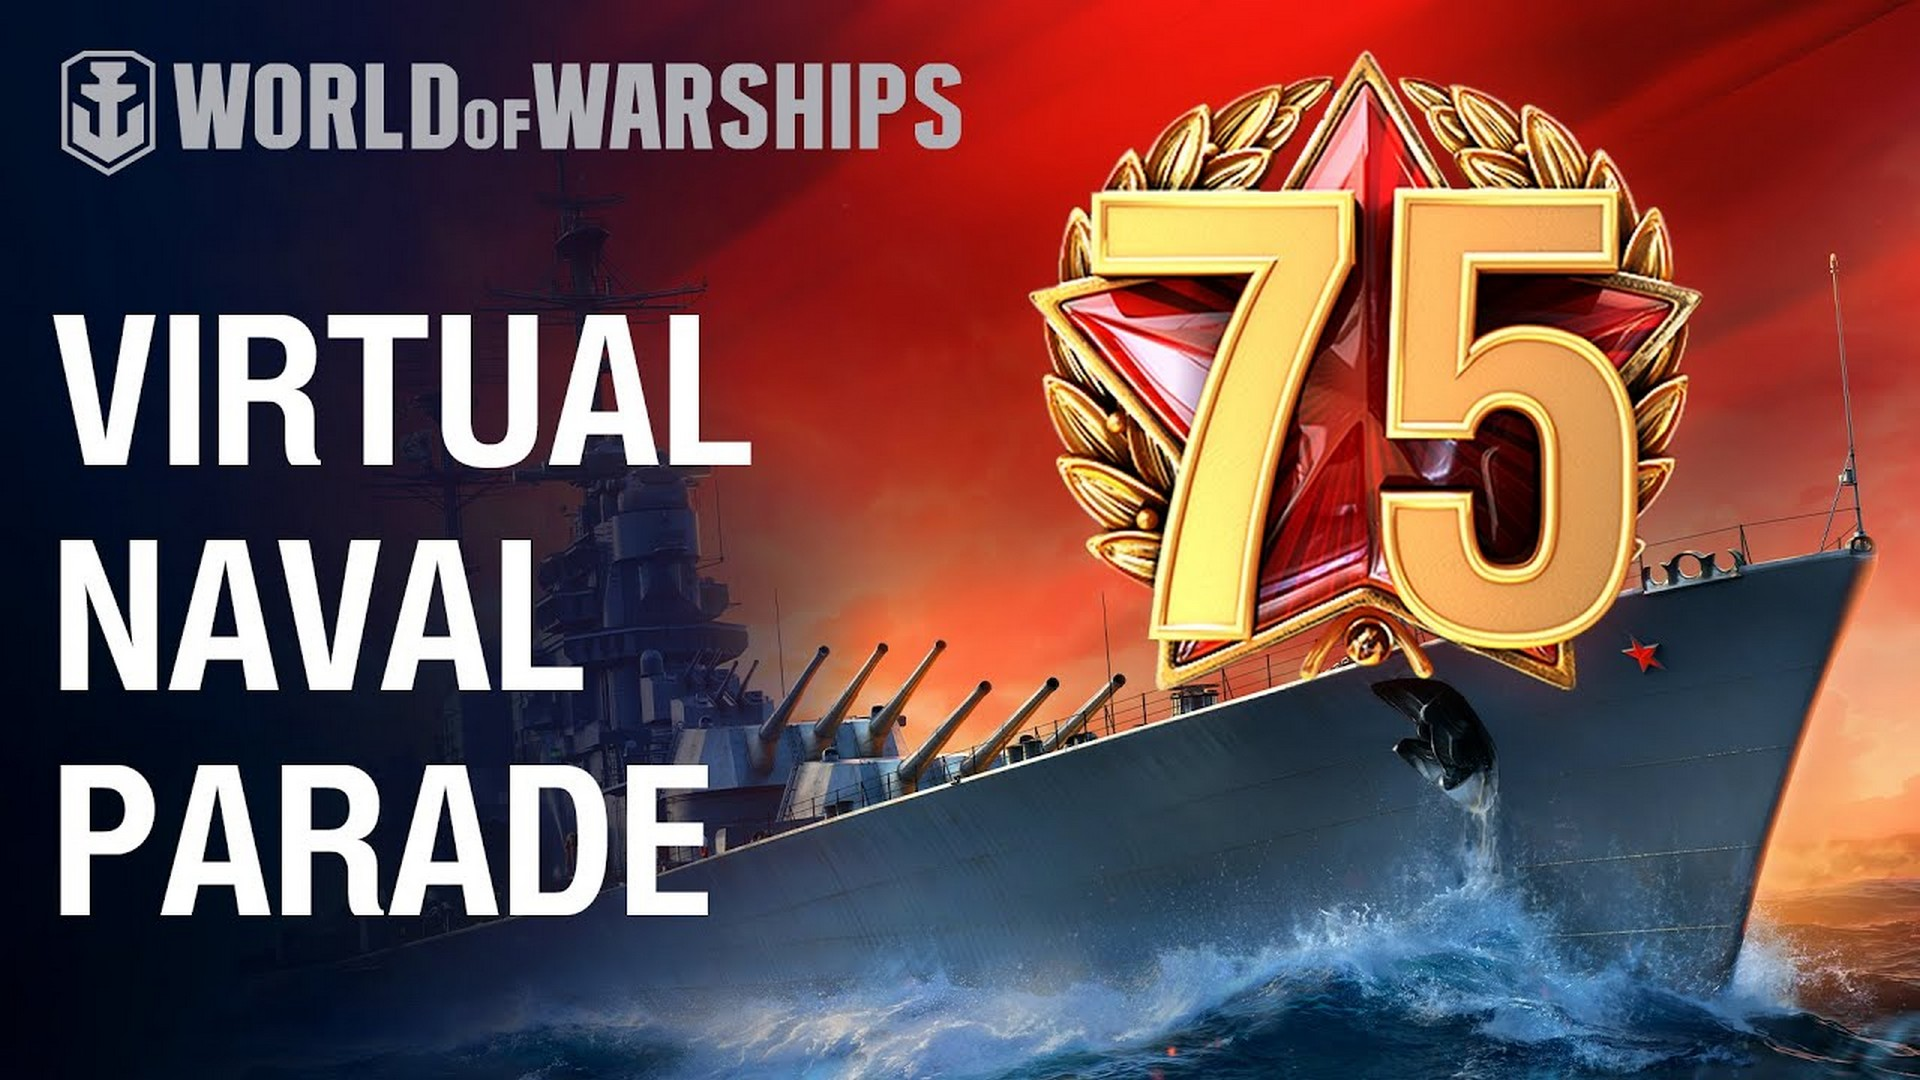 World of Warships Celebrated 75th Anniversary Of VE Day With A Virtual Naval Parade